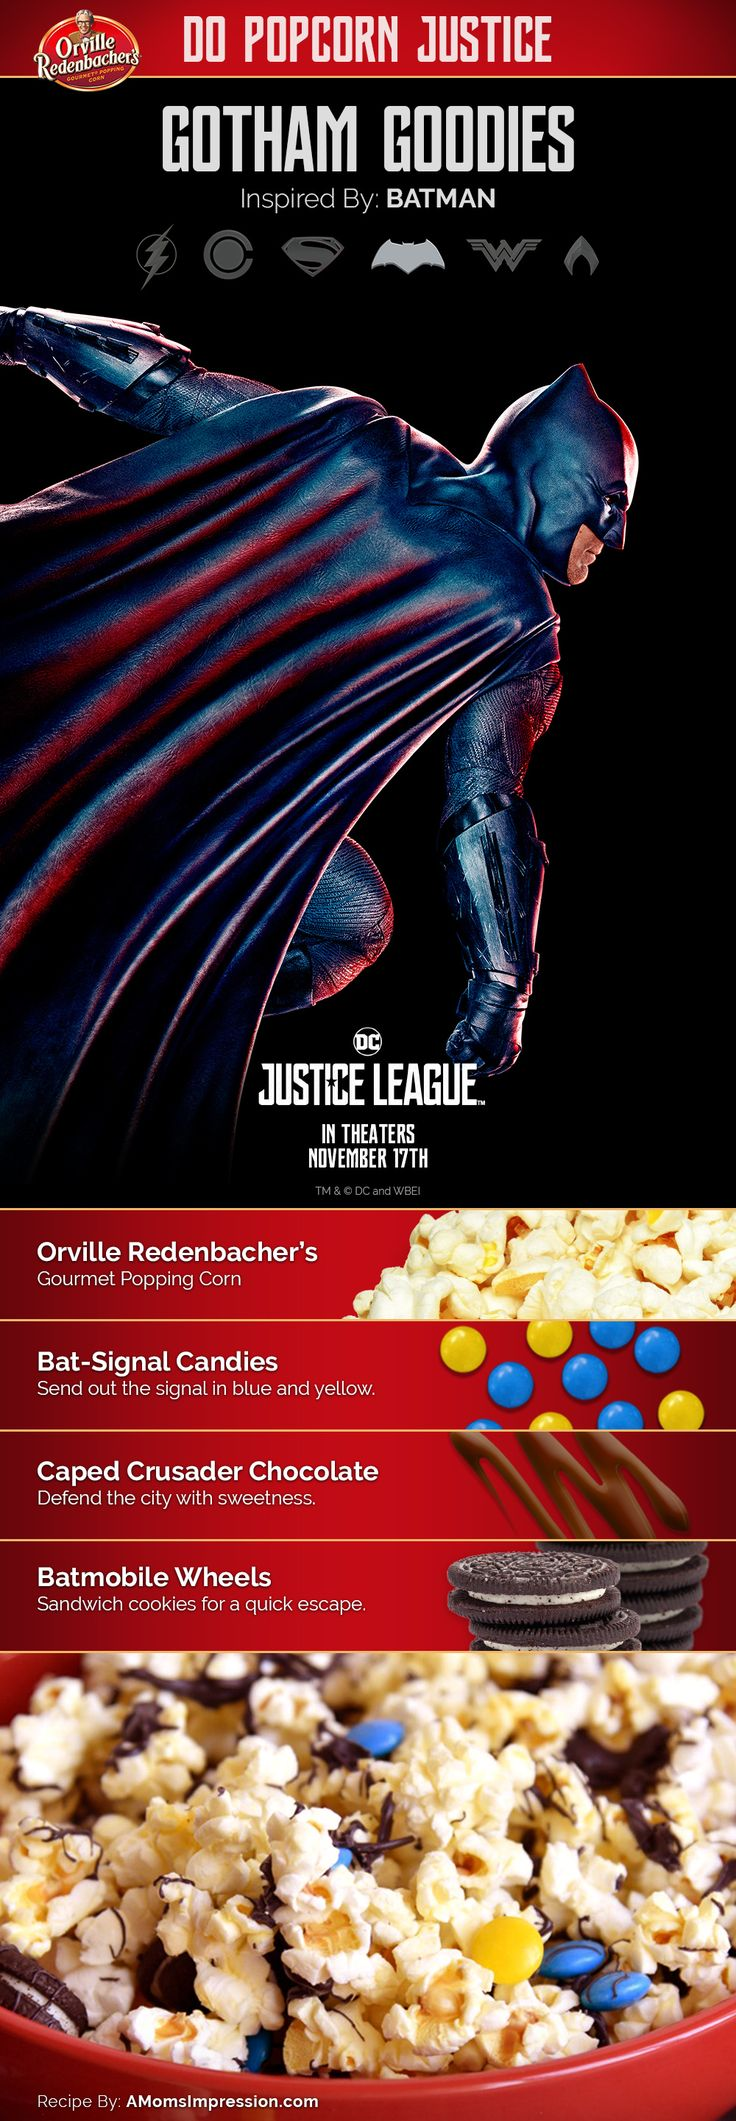 Gotham Goodies Popcorn: Inspired by Batman #orvillepopcornjusticesweepstakes